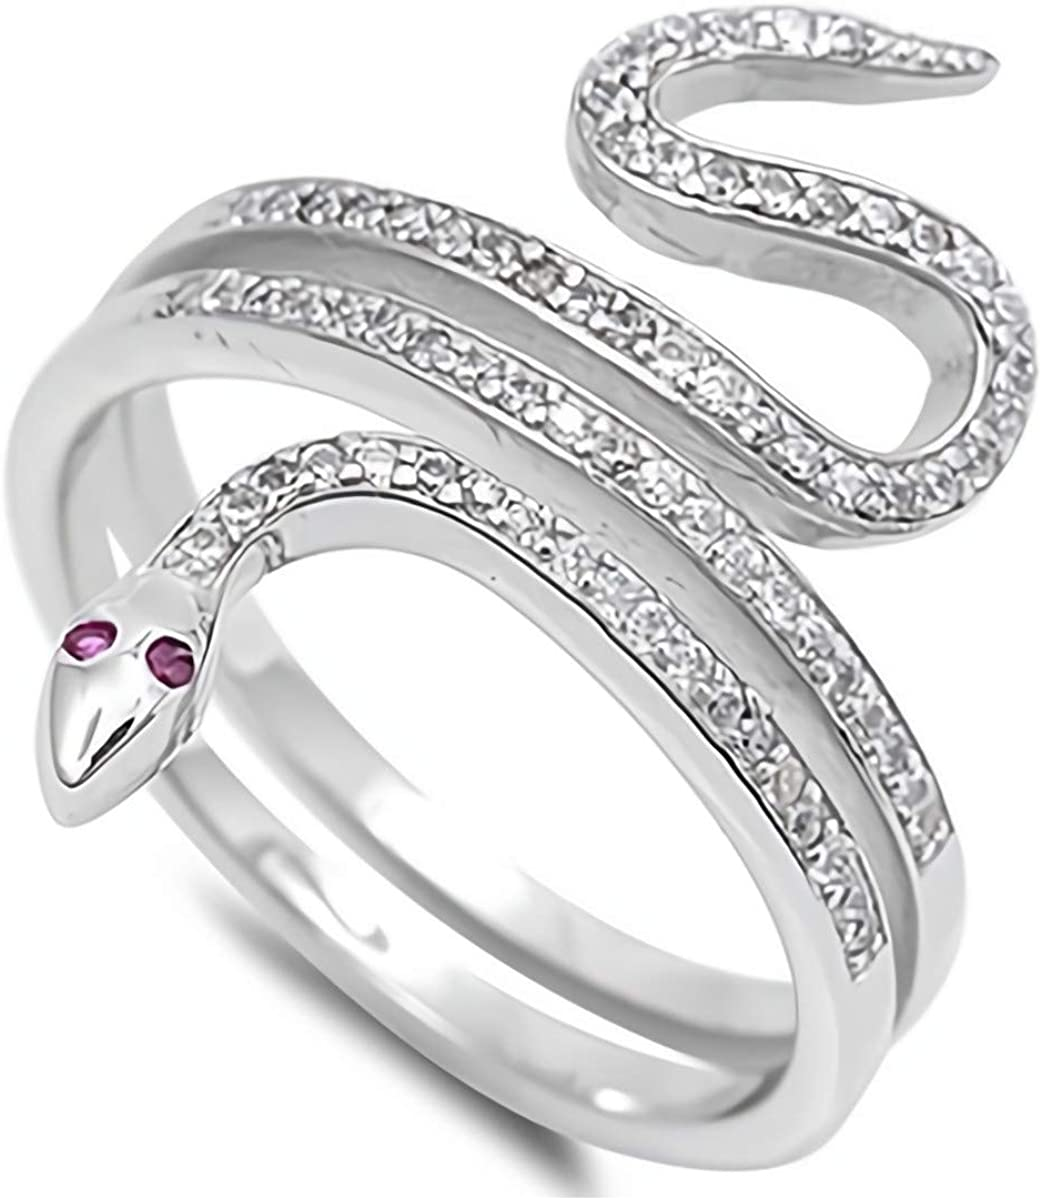 Glitzs Jewels 925 Sterling Silver CZ Ring (Red & Clear/Snake) | Cubic Zirconia Jewelry Gift